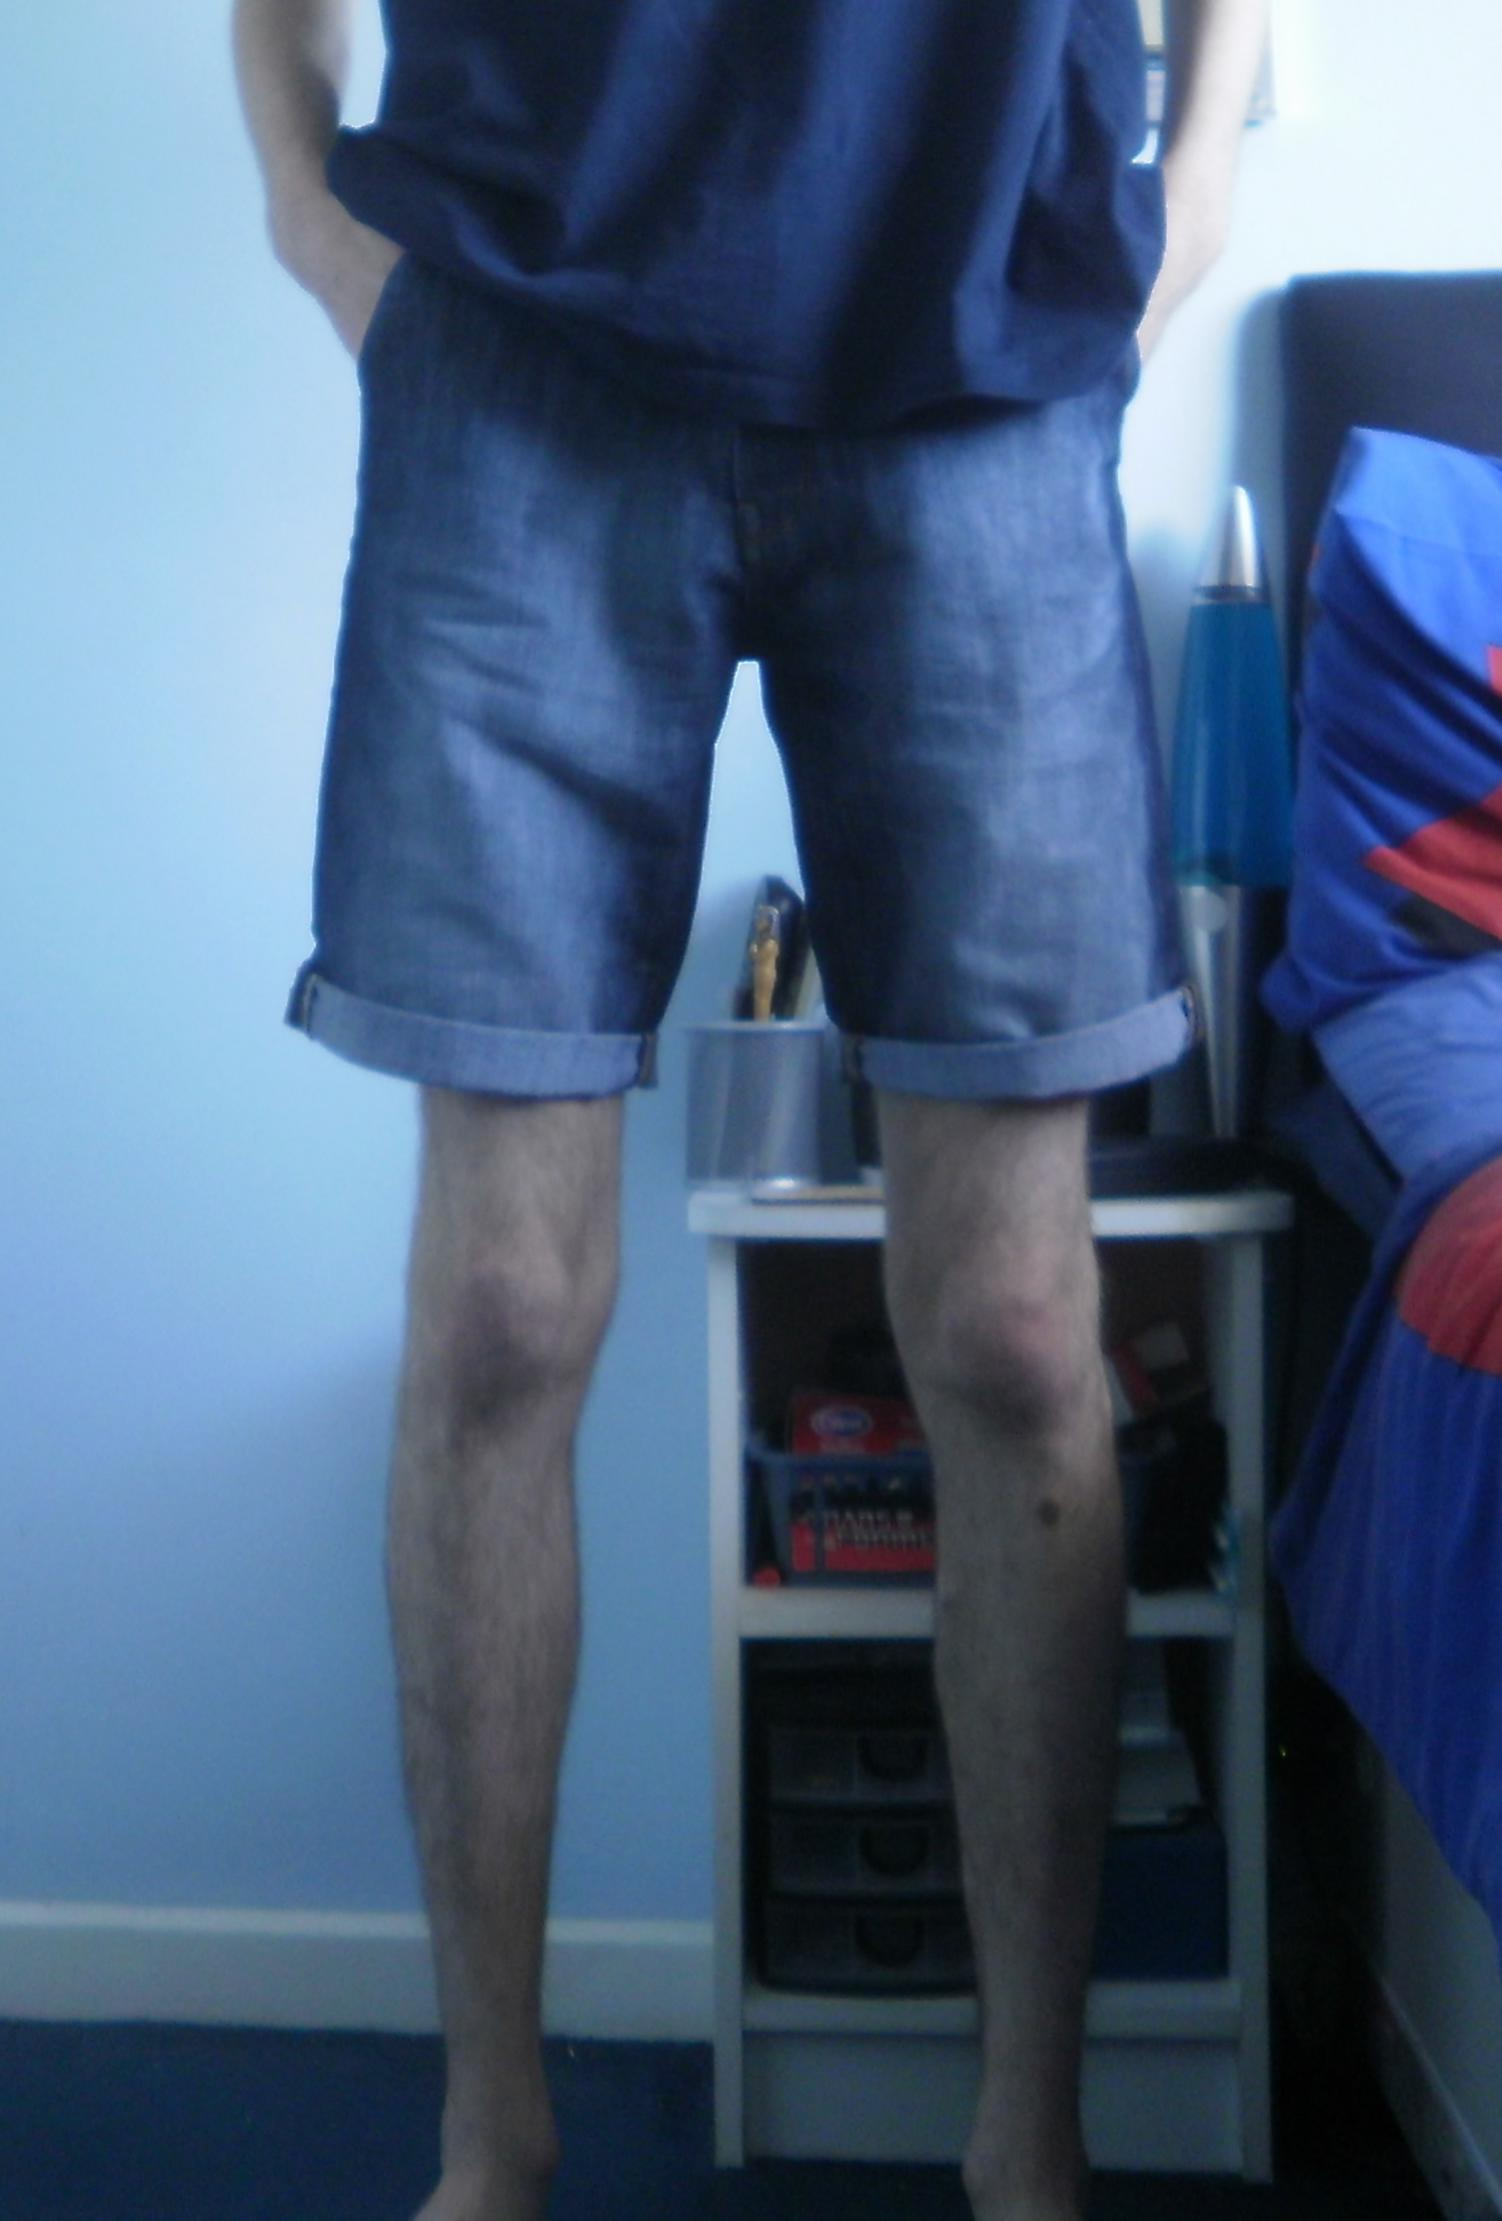 "Having the legs for shorter shorts, which I think is what you mean by being able to pull off the look, is one issue. Rudeness is another. (or I guess shorts). The whole skinny tight fitting men's clothes thing is a fad that will (hopefully) pass. ""David commented on How to Wear Shorts (and How Men's Shorts ."